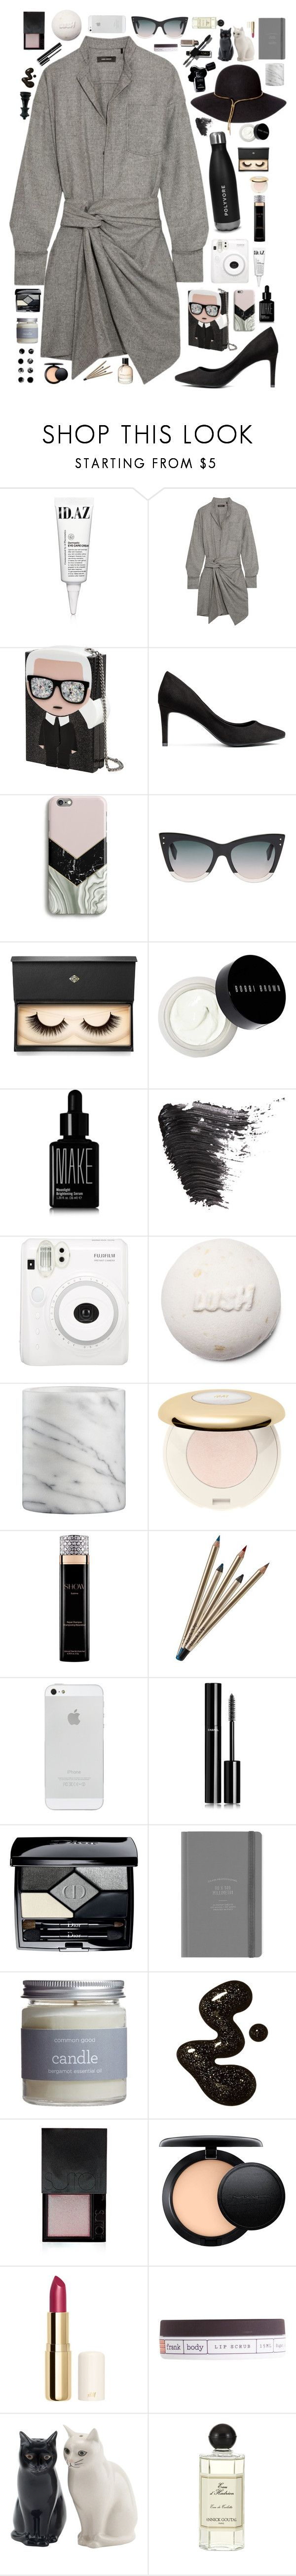 """""""I see you on the street some other time, and all our words would just fall out of line"""" by milky-siamese ❤ liked on Polyvore featuring ID.AZ, Isabel Marant, Karl Lagerfeld, Harper & Blake, Fendi, Lash Star Beauty, Bobbi Brown Cosmetics, Make, Topshop and Fuji"""